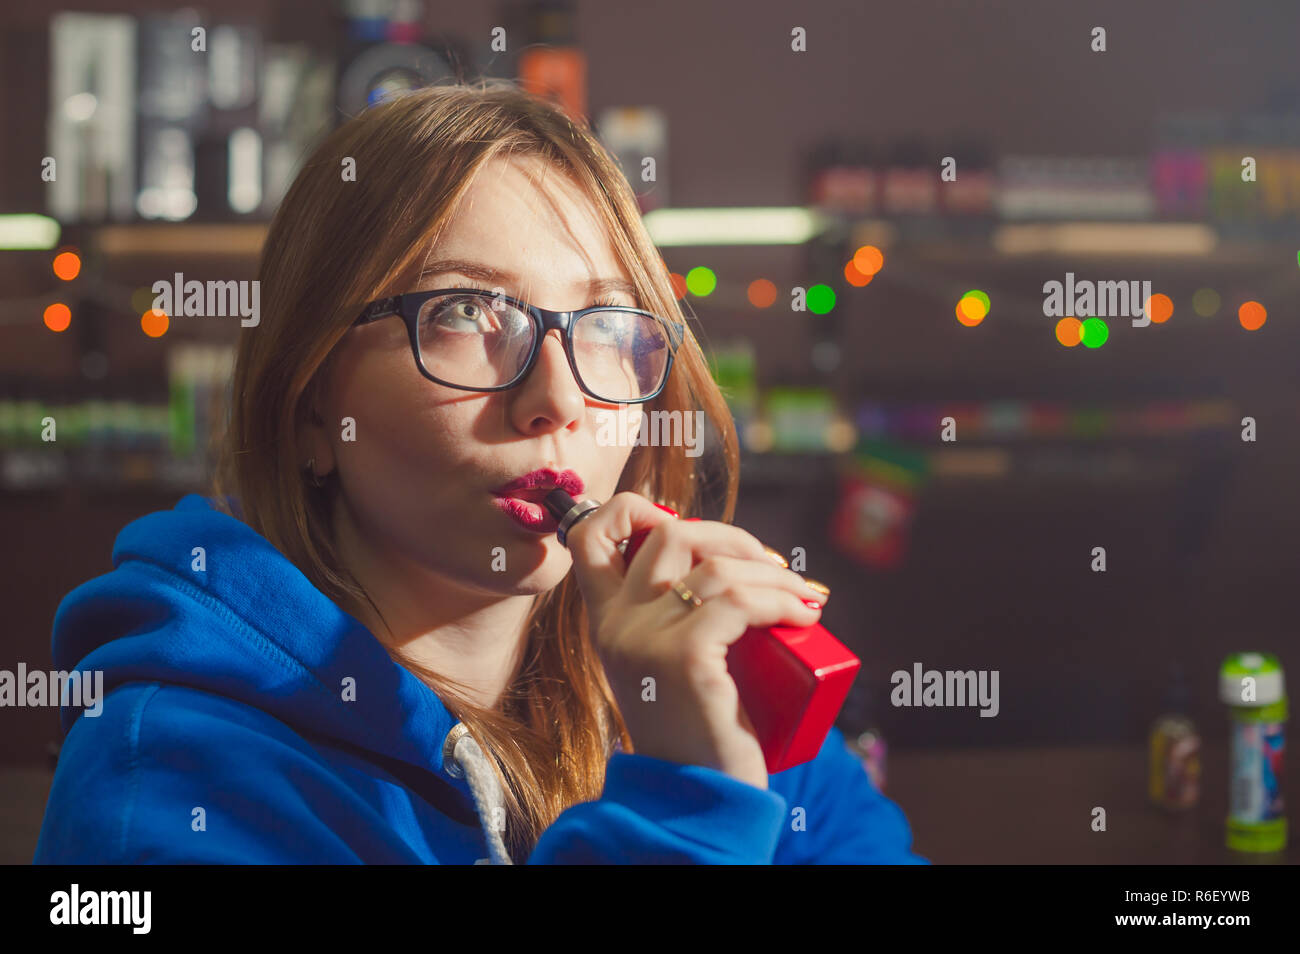 beautiful young woman with glasses smoking electronic cigarette. girl in a blue sweater brings to his lips red box mod, sitting indoors vape shop cafe - Stock Image